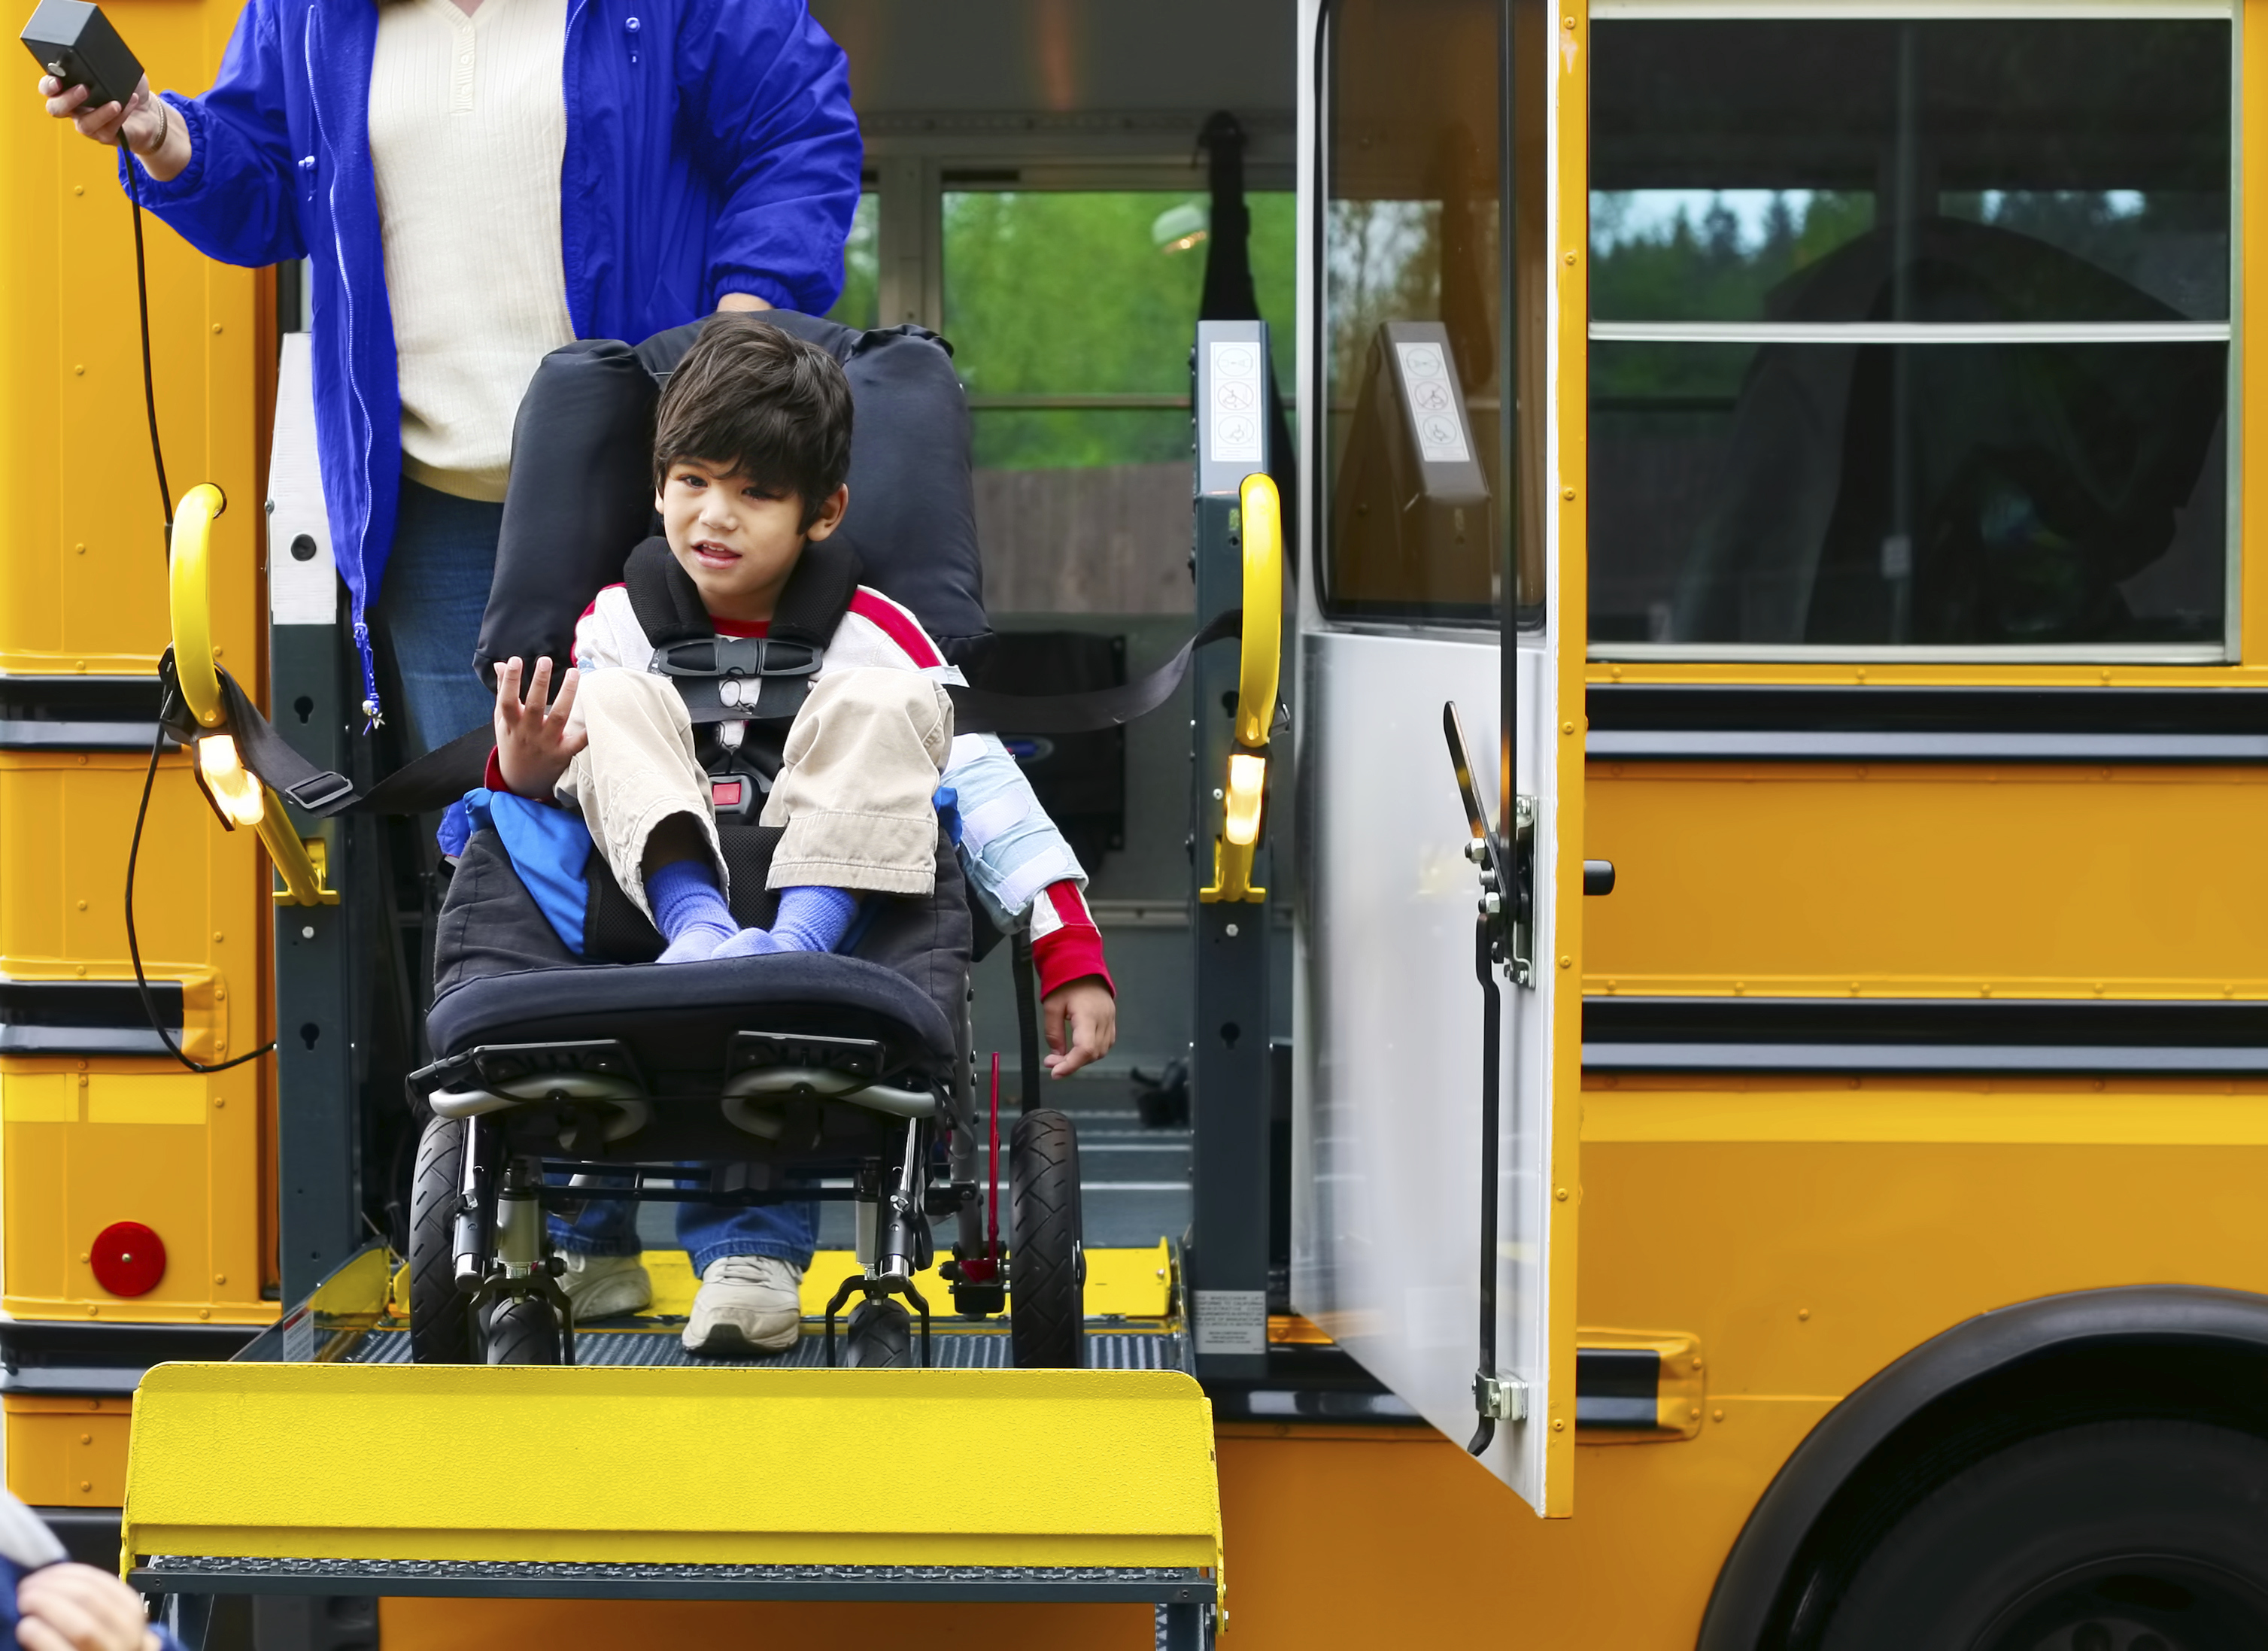 Disabled five year old boy using a wheelchairbus lift